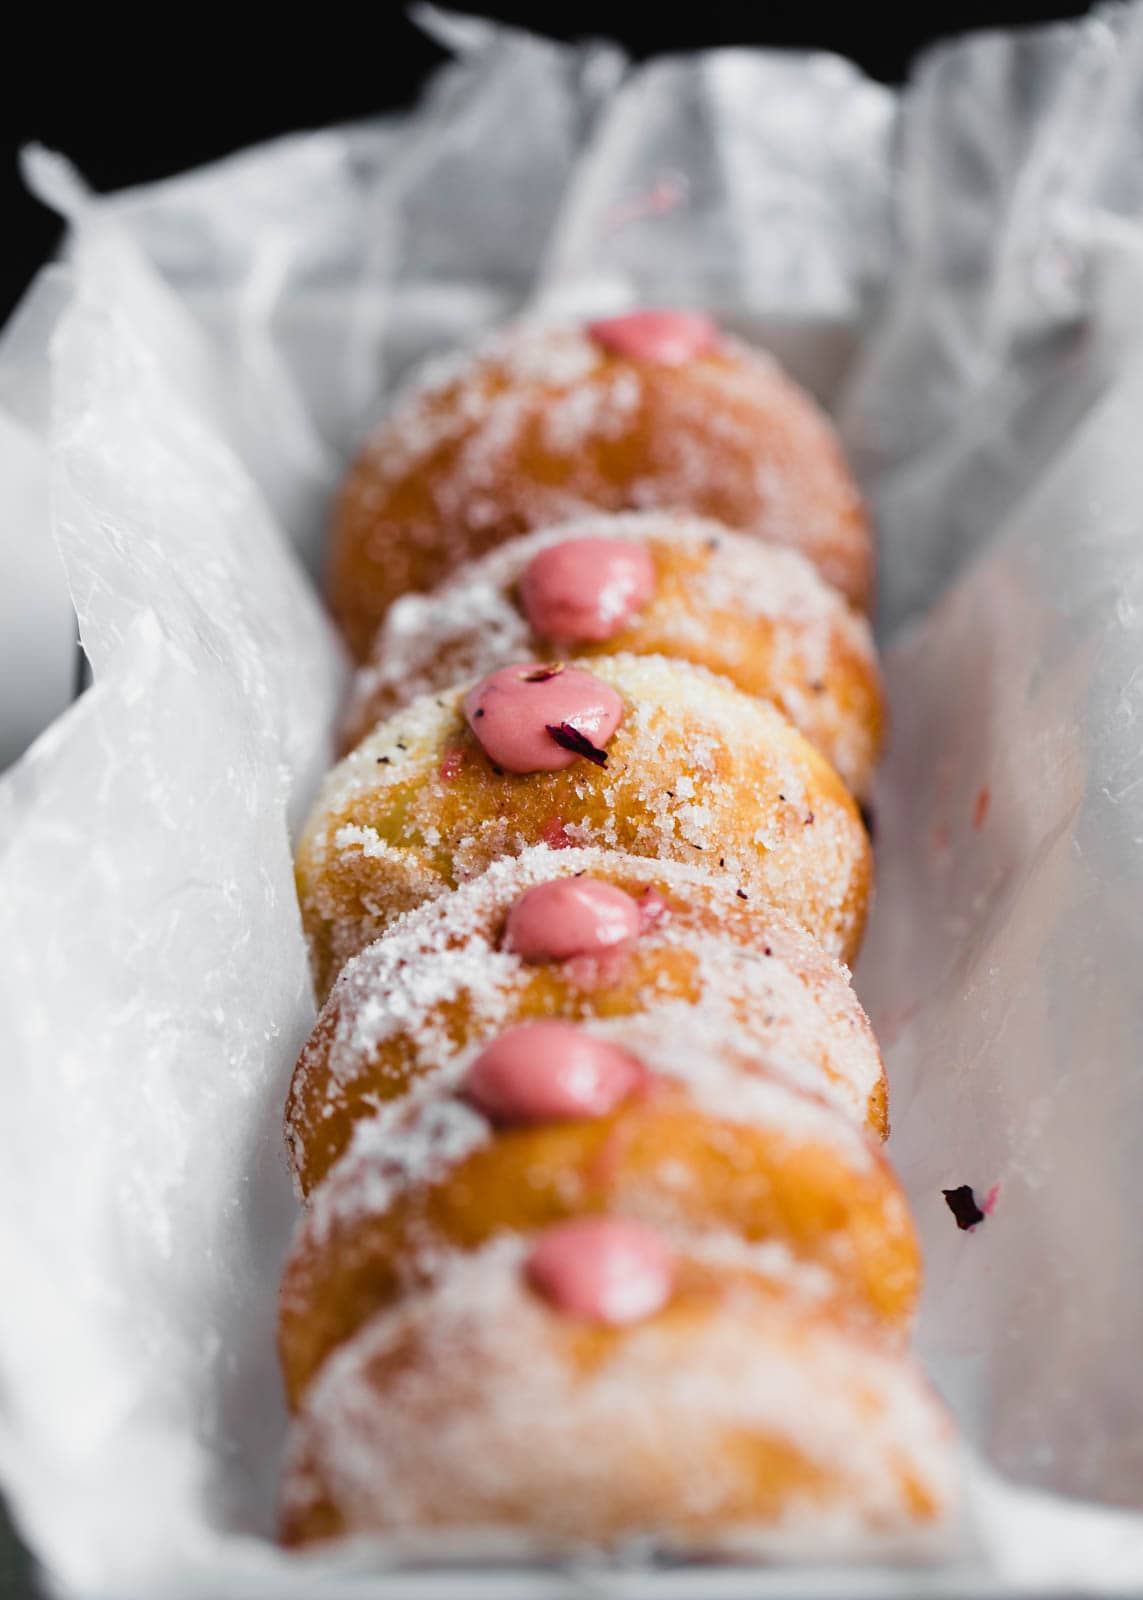 Golden and fried to perfection, these yeasted donuts are tossed in a hibiscus sugar and stuffed with a hibiscus pastry cream. Uhm, DROOL.